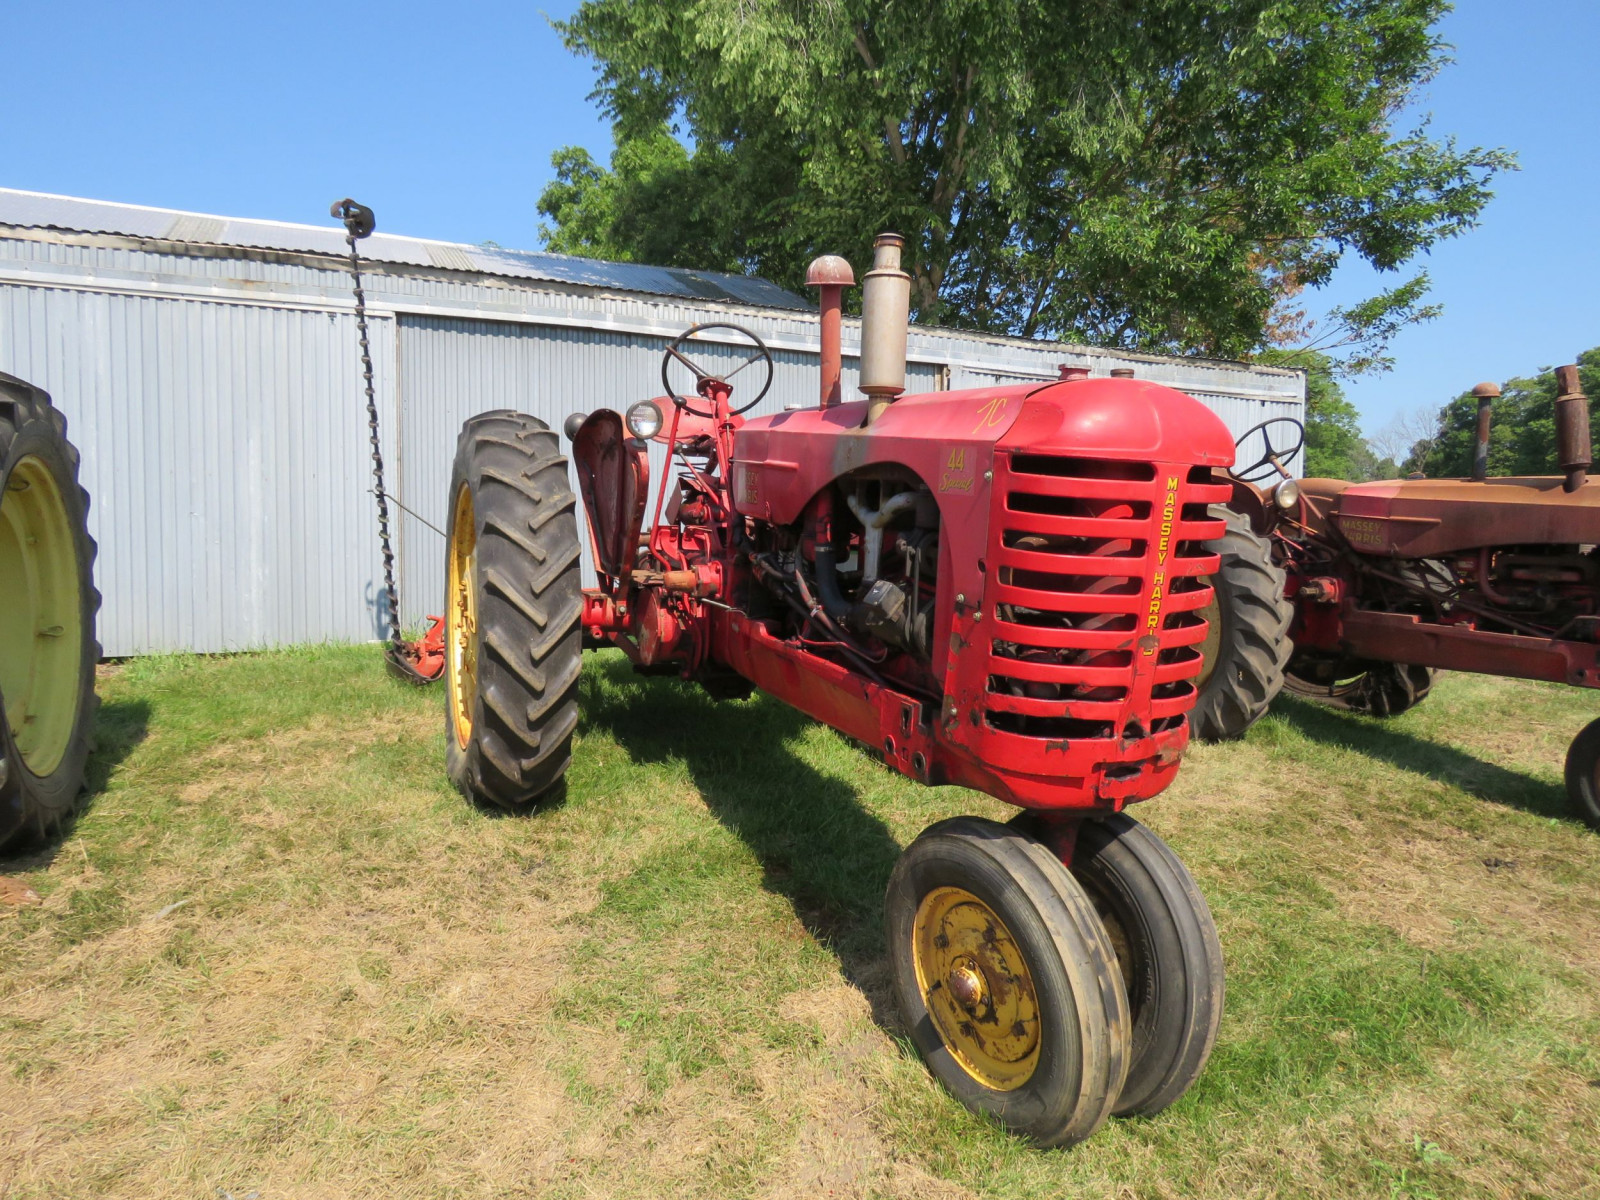 1955 Massey Harris 44 Special Tractor - Image 1